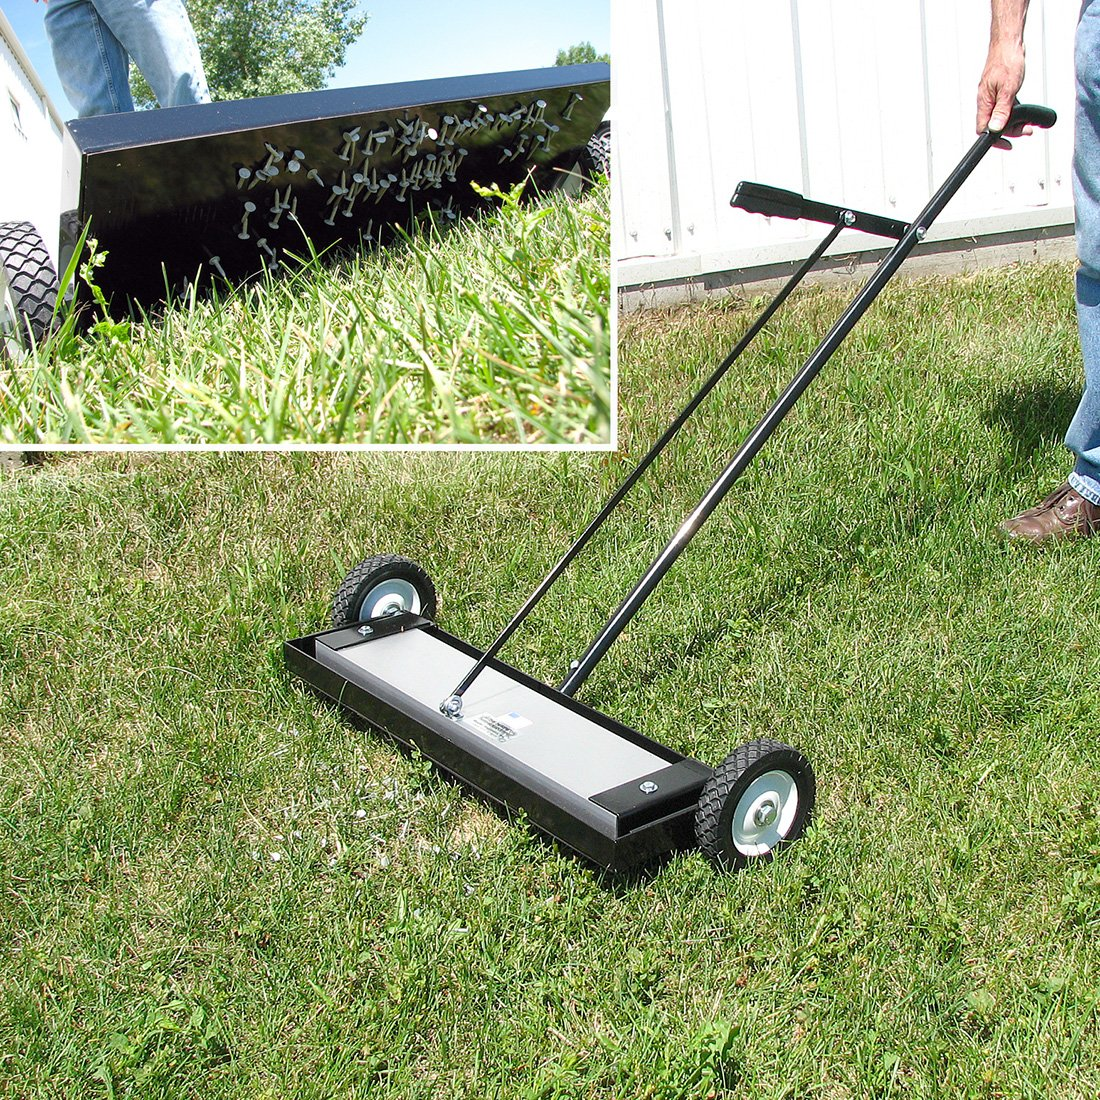 Magnetic Sweeper Heavy Duty Push-Type with Release, 24'' Sweeping Width, 1 each by Master Magnetics